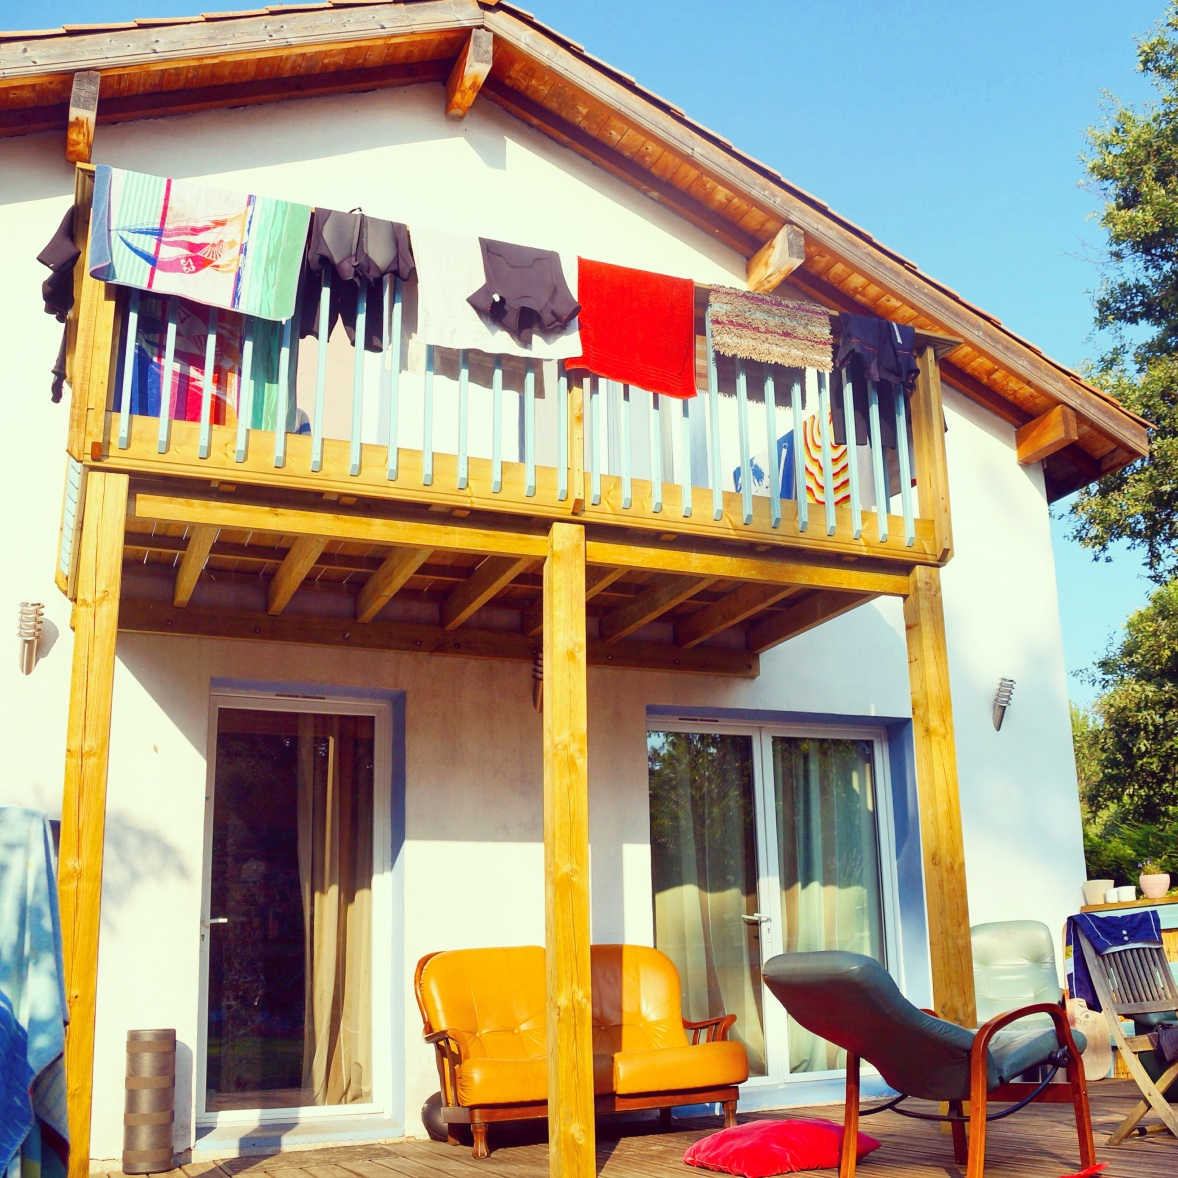 Shifting Sand's friendly Surf House for surfers and vacationers